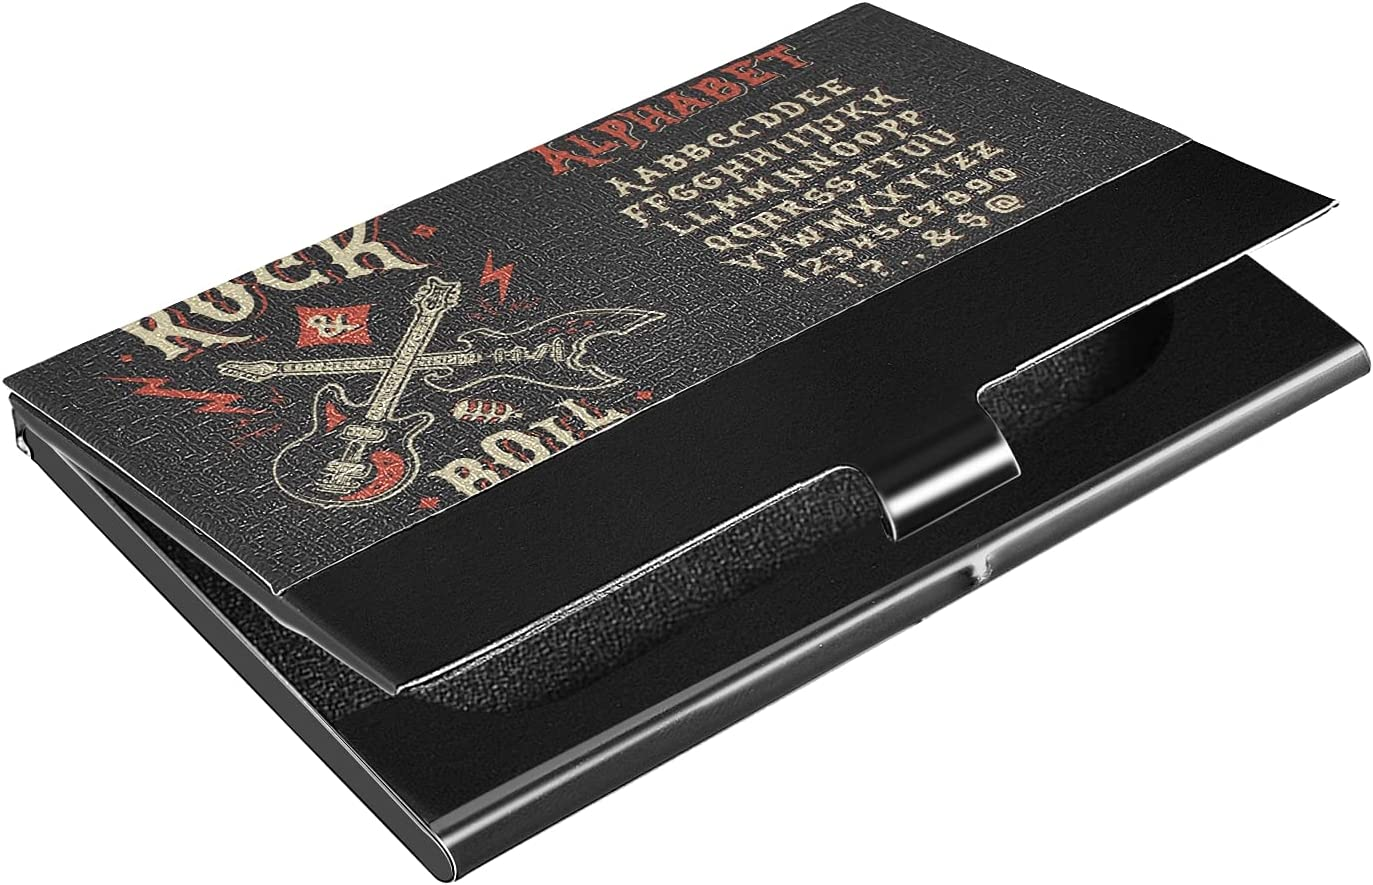 OTVEE Year-end annual account Vintage Old Rock Roll Card Holder Leather Business Challenge the lowest price of Japan ☆ Coat